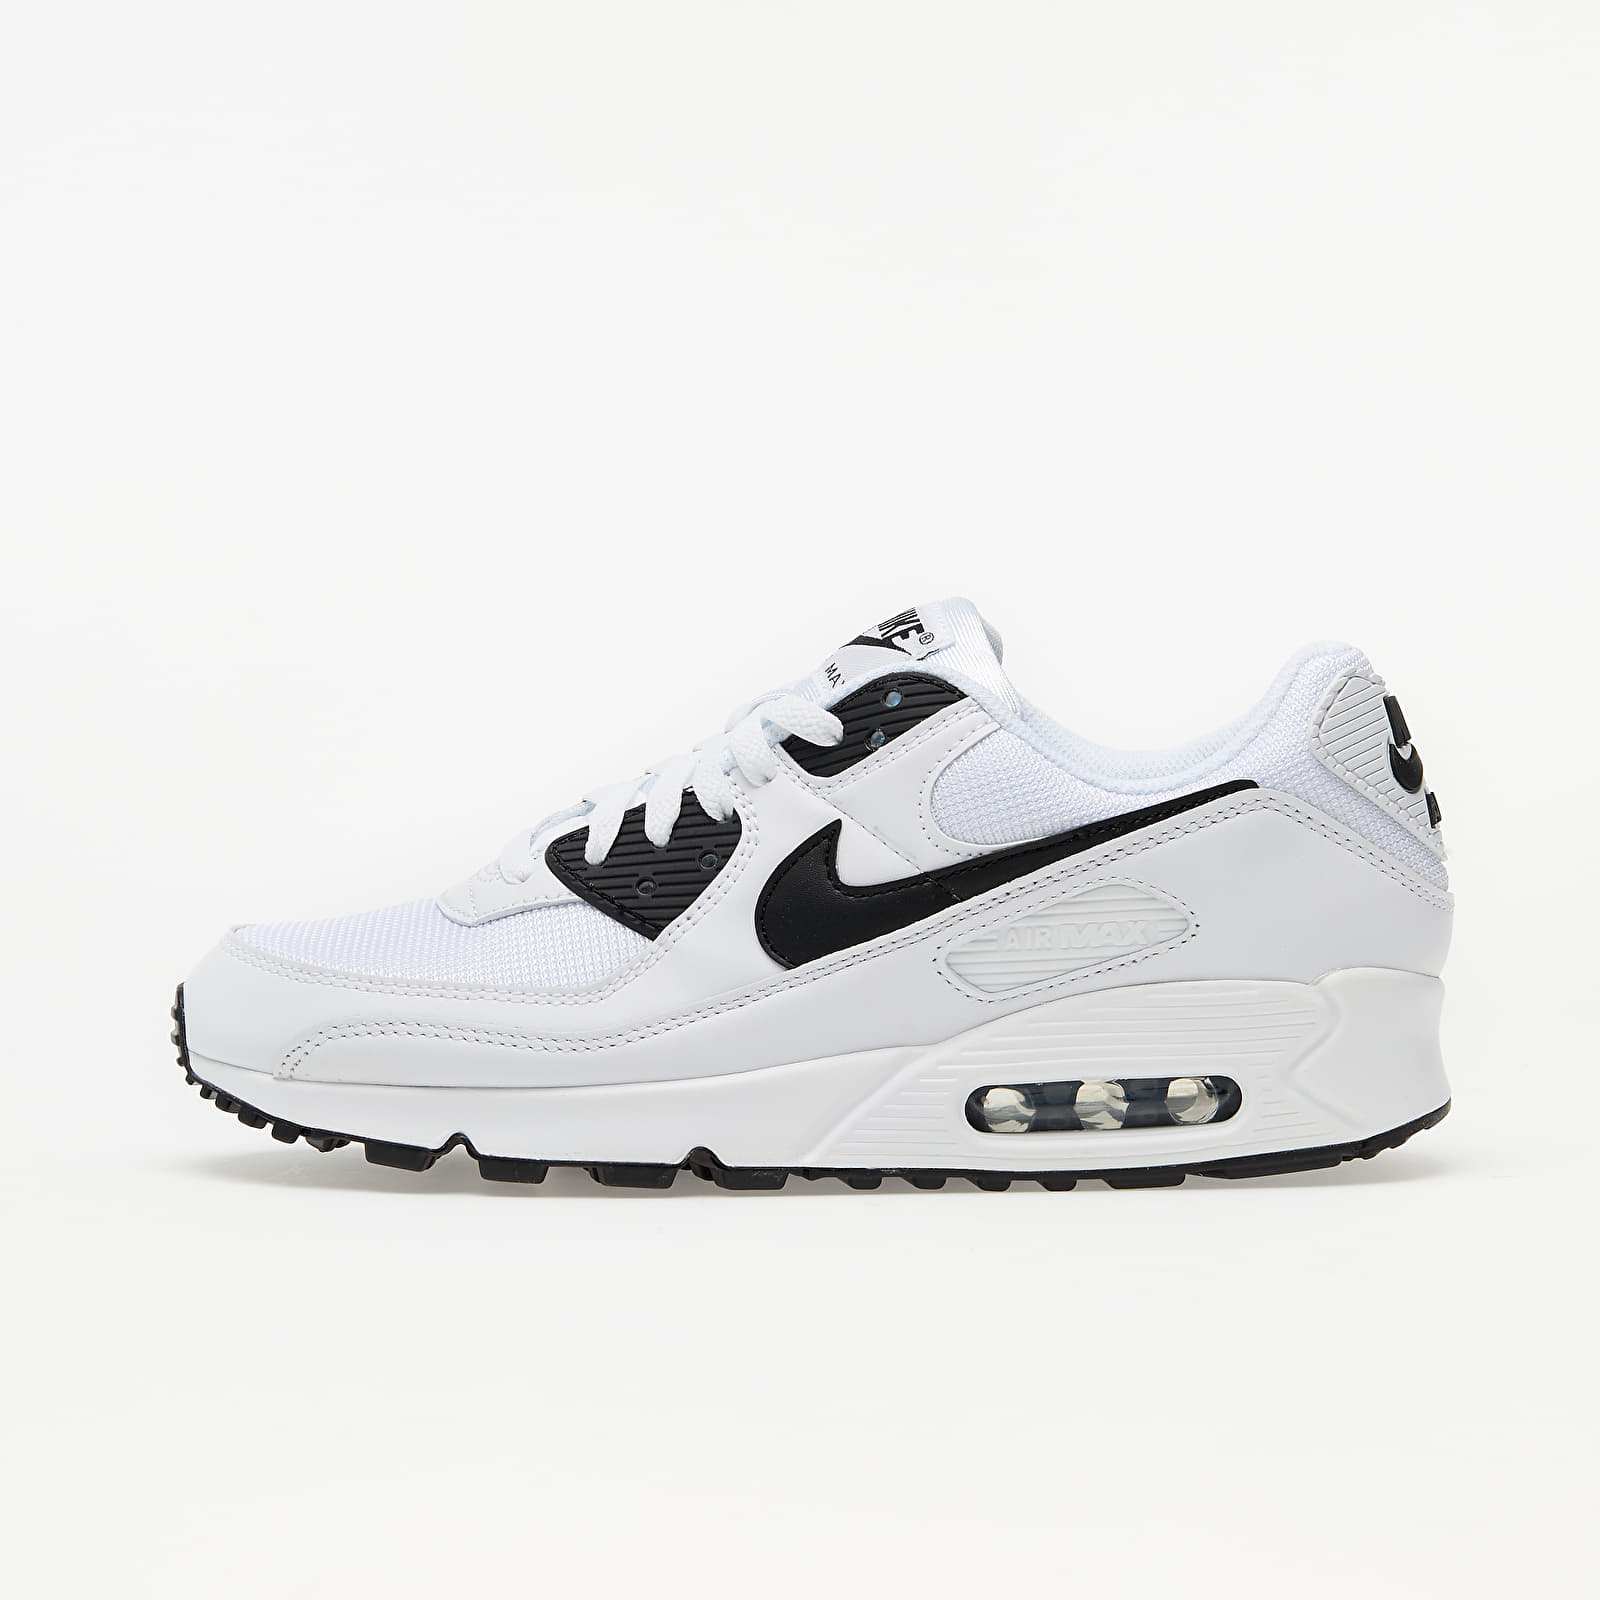 Nike Air Max 90 White/ Black-White EUR 41